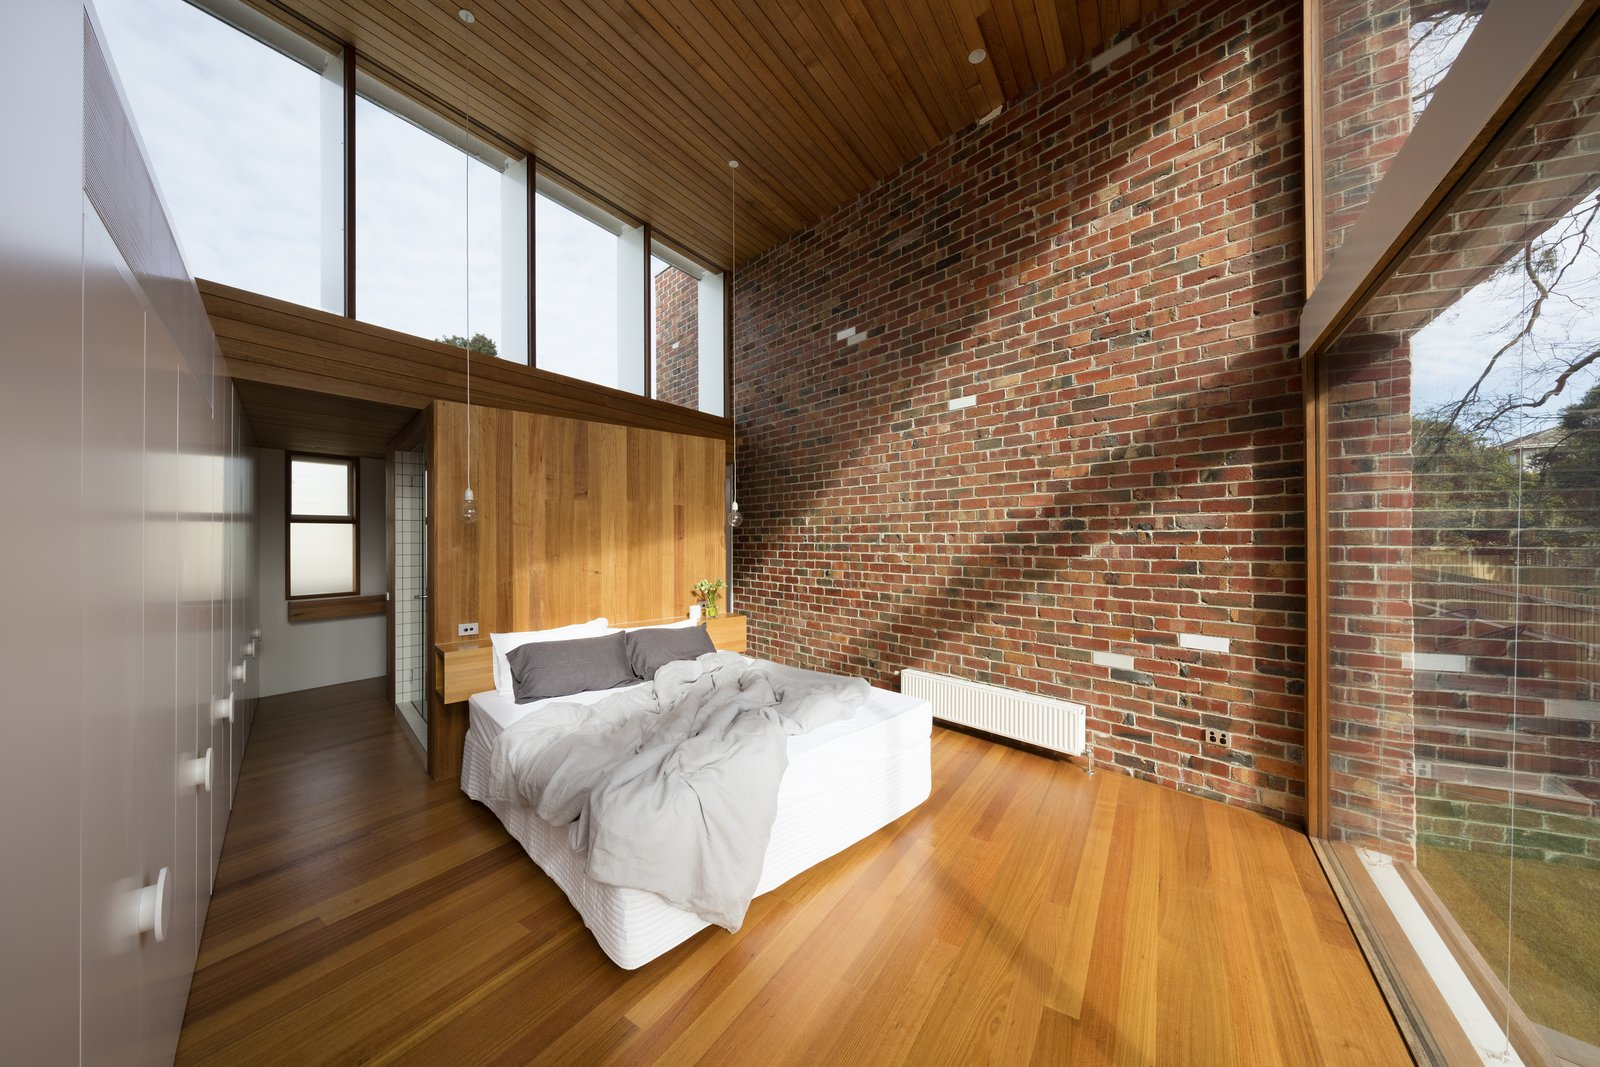 The timber used for the addition comes from sustainable, natural plantation oak.